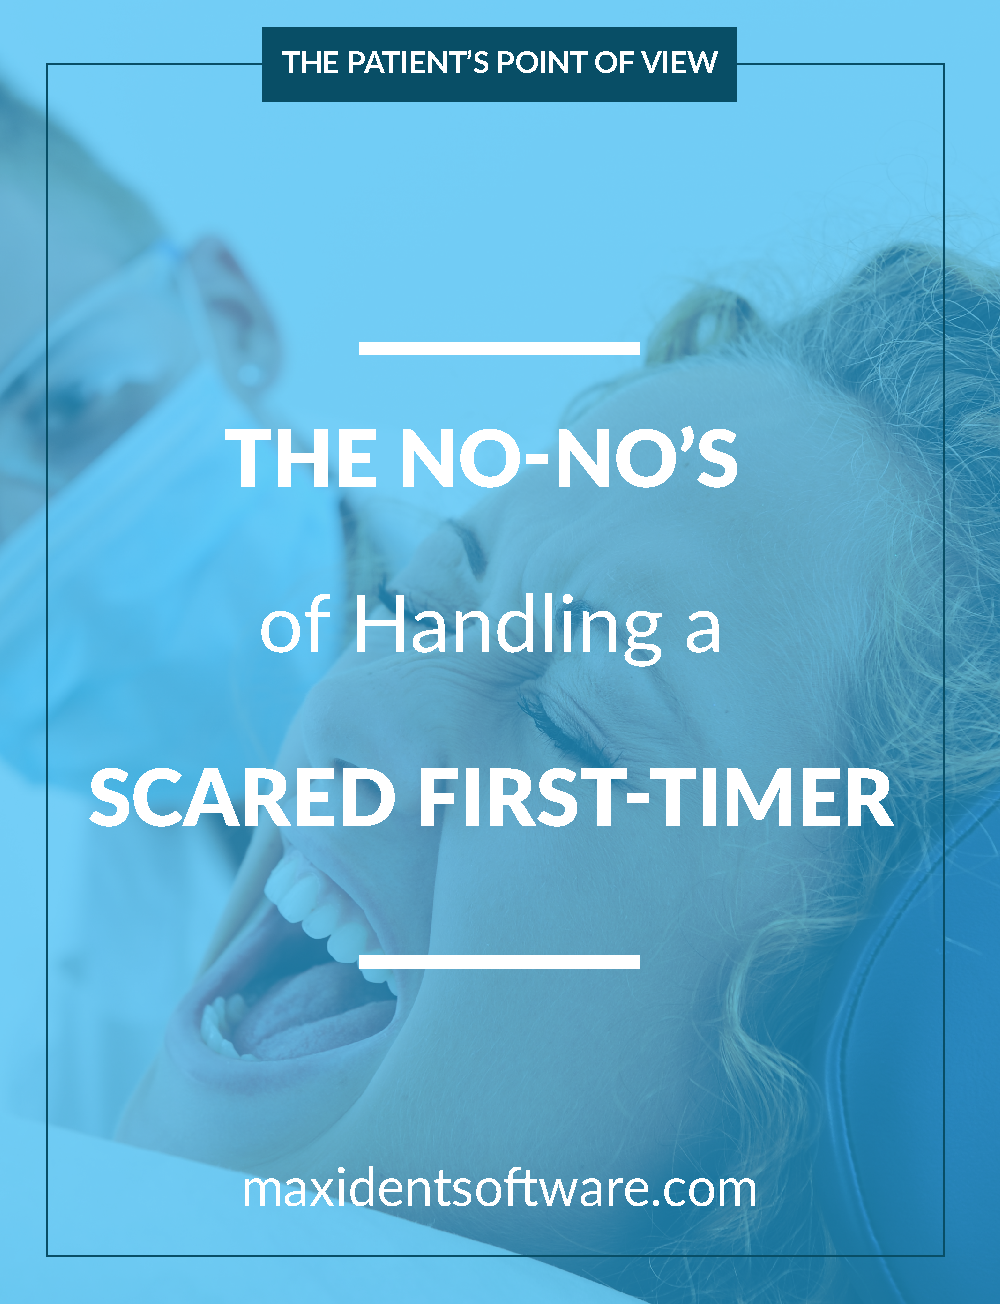 The No-No's of Handling a Scared First-Timer